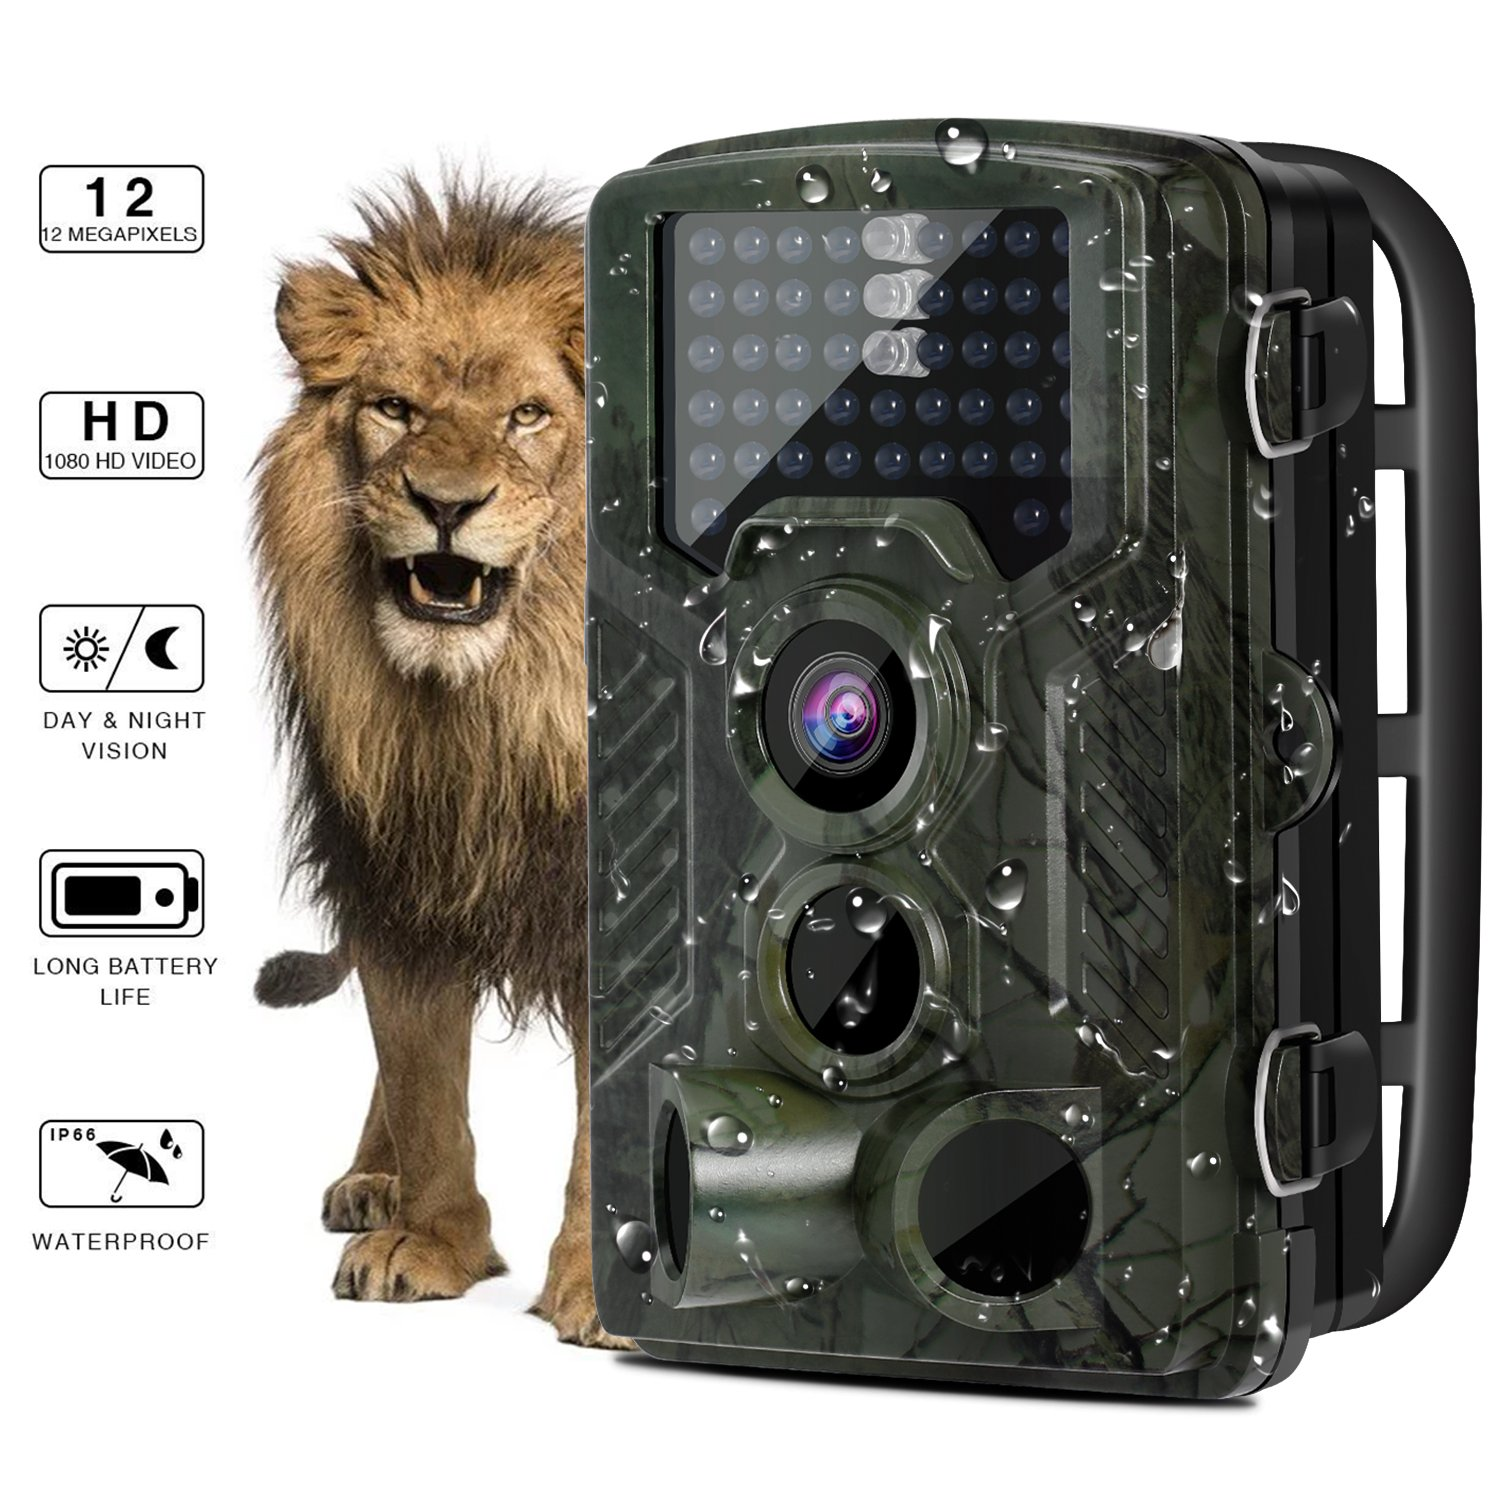 Wildlife Trail Camera - YKS Hunting Game Cam with Infrared Night Version, 2.4 inch LCD Screen, PIR Sensors, TF card up to 32GB, 46 infrared light,0.2 second trigger speed, IP56 Spray Water Protected design BEIYI HOME-CA